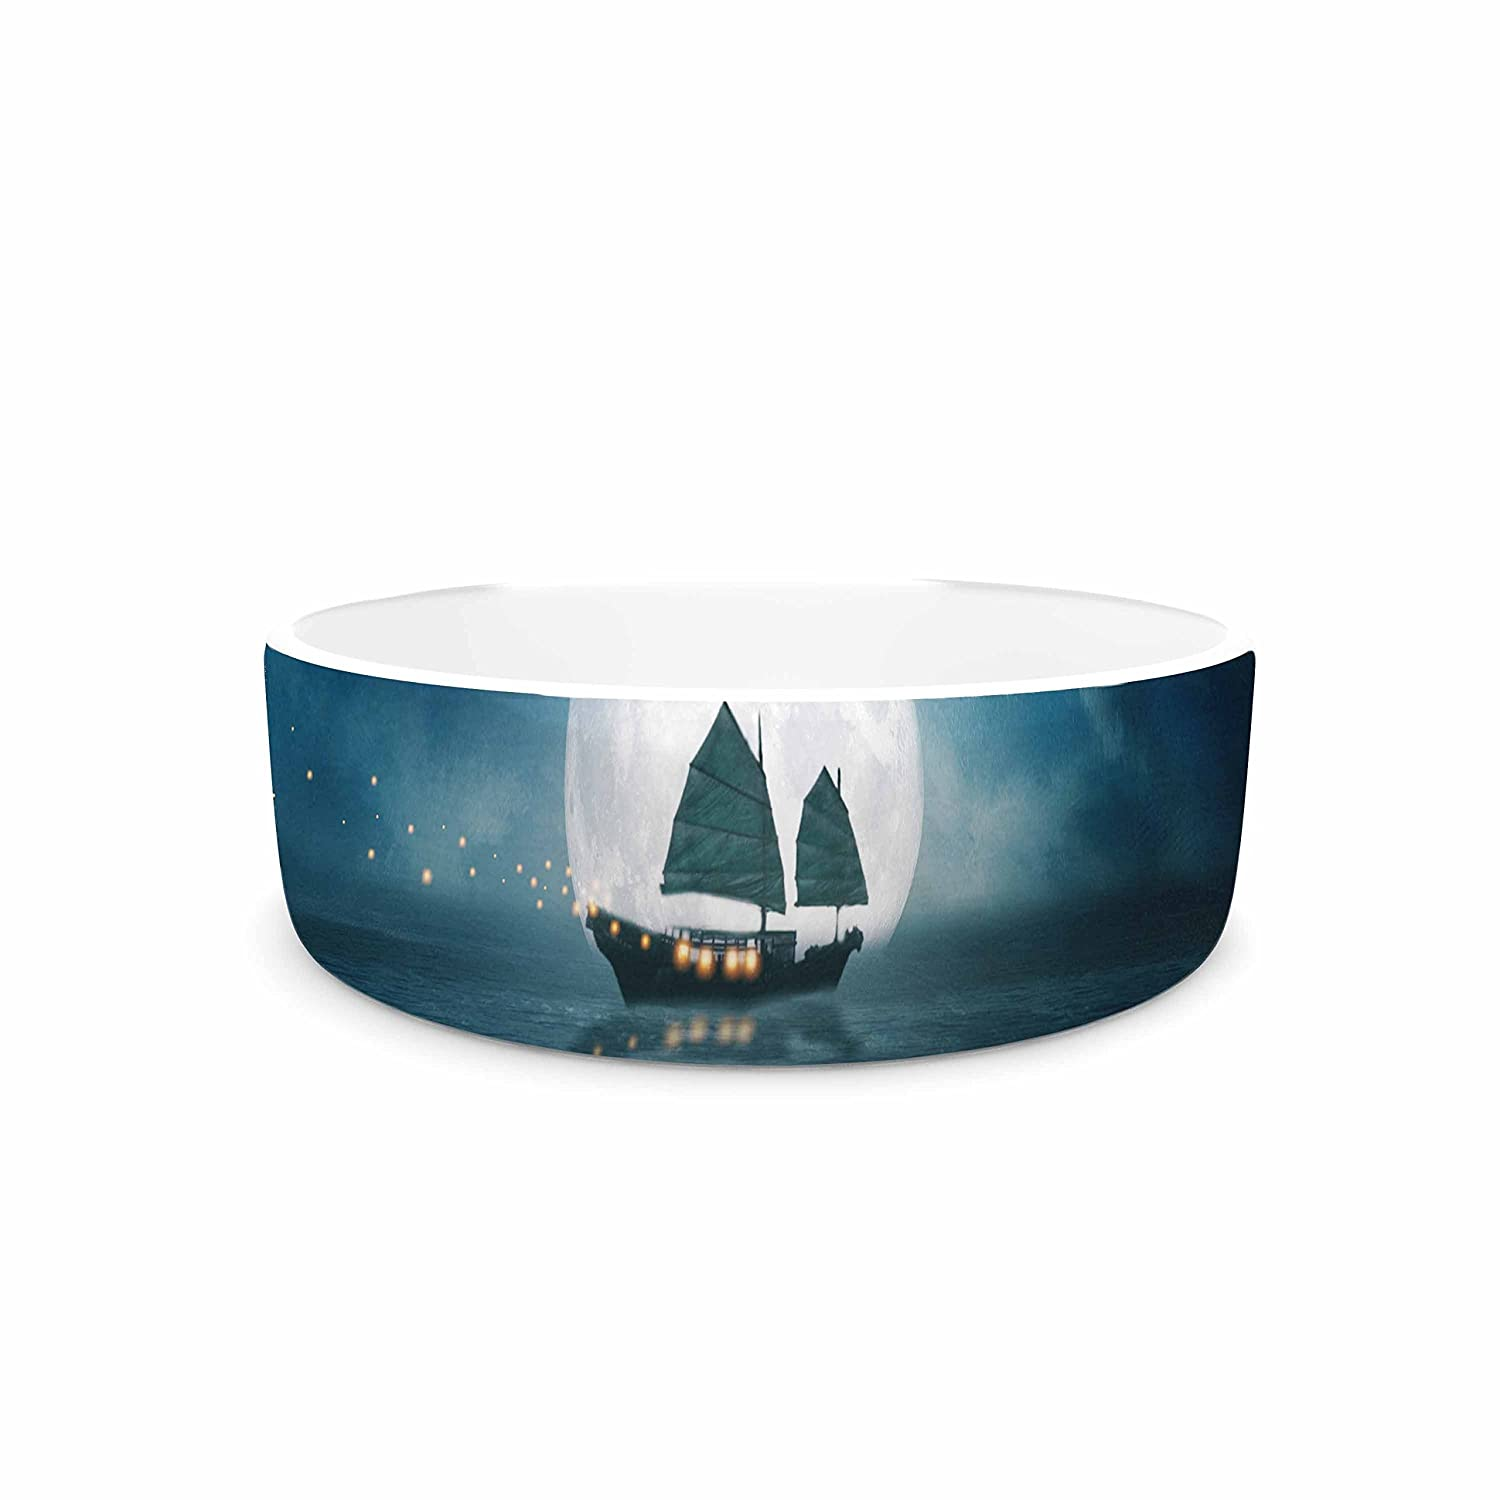 KESS InHouse Viviana Gonzalez Travel Through The Lights bluee orange Digital Pet Bowl, 7